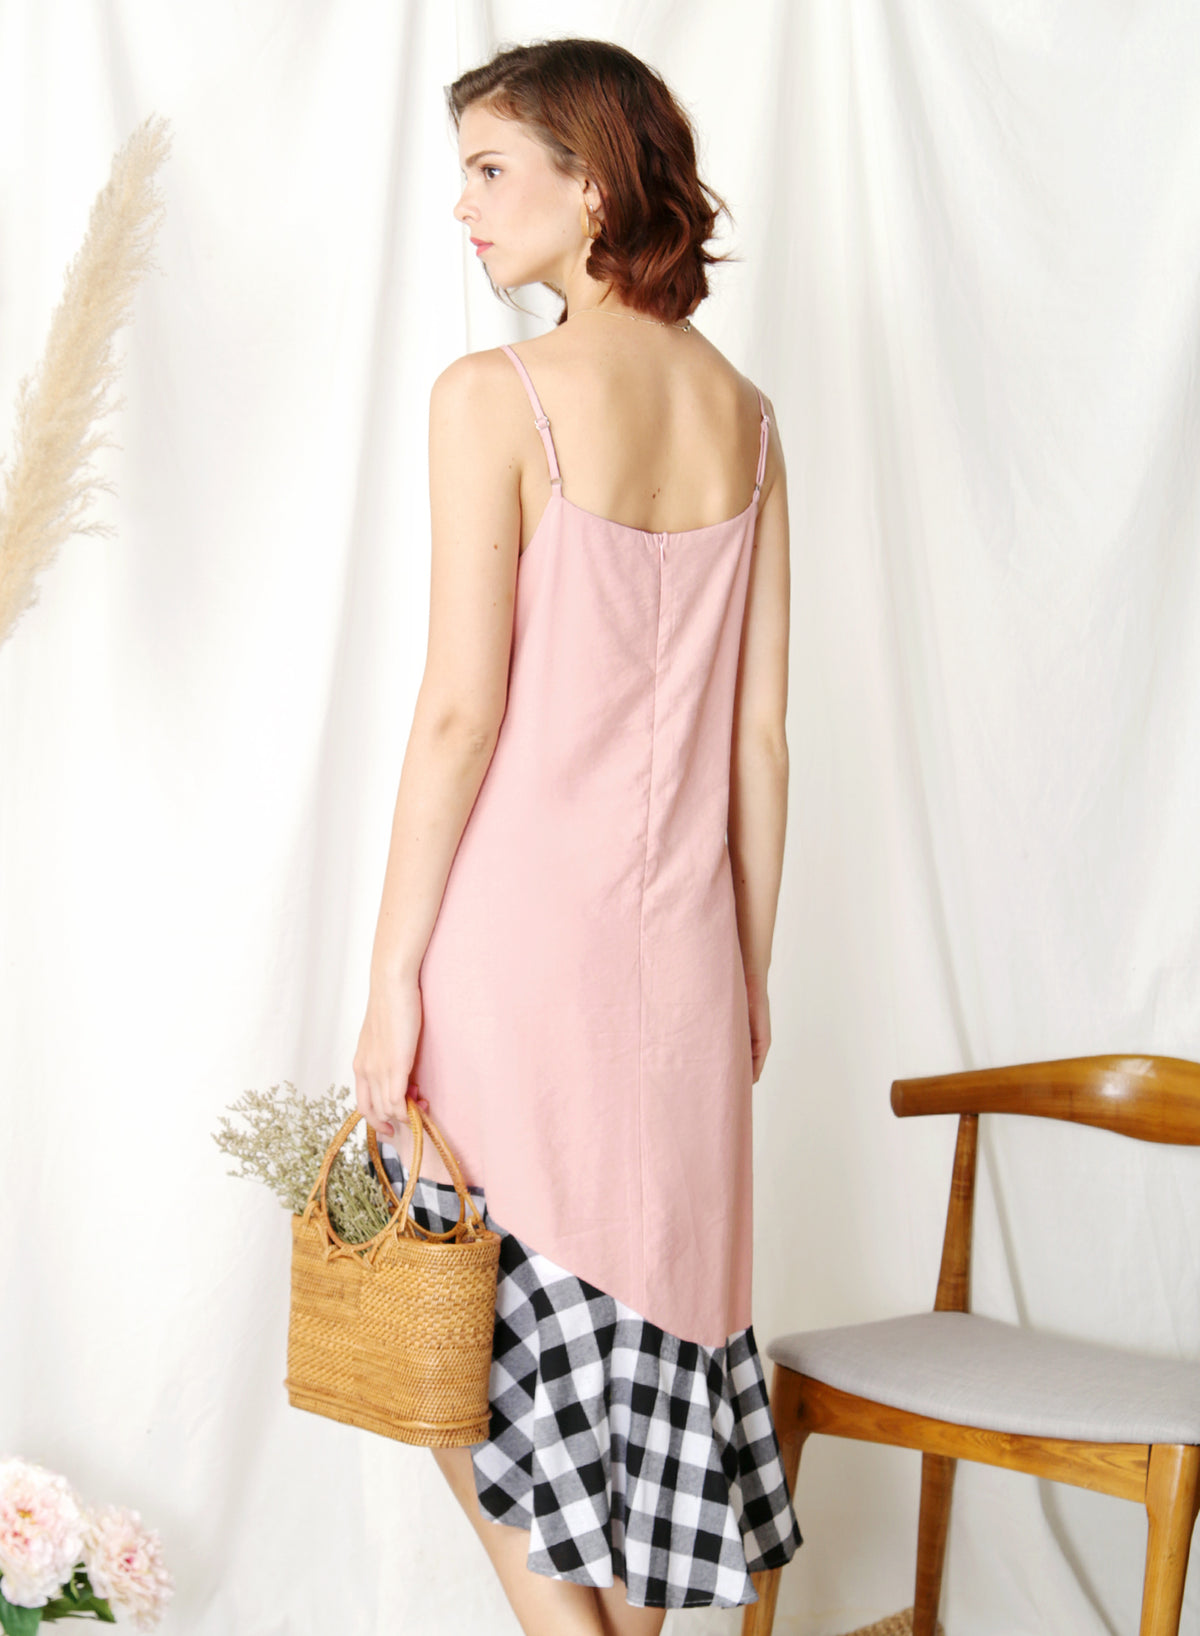 Sidelines Contrast Hem Maxi Dress (Pink/Black) at $ 45.00 only sold at And Well Dressed Online Fashion Store Singapore